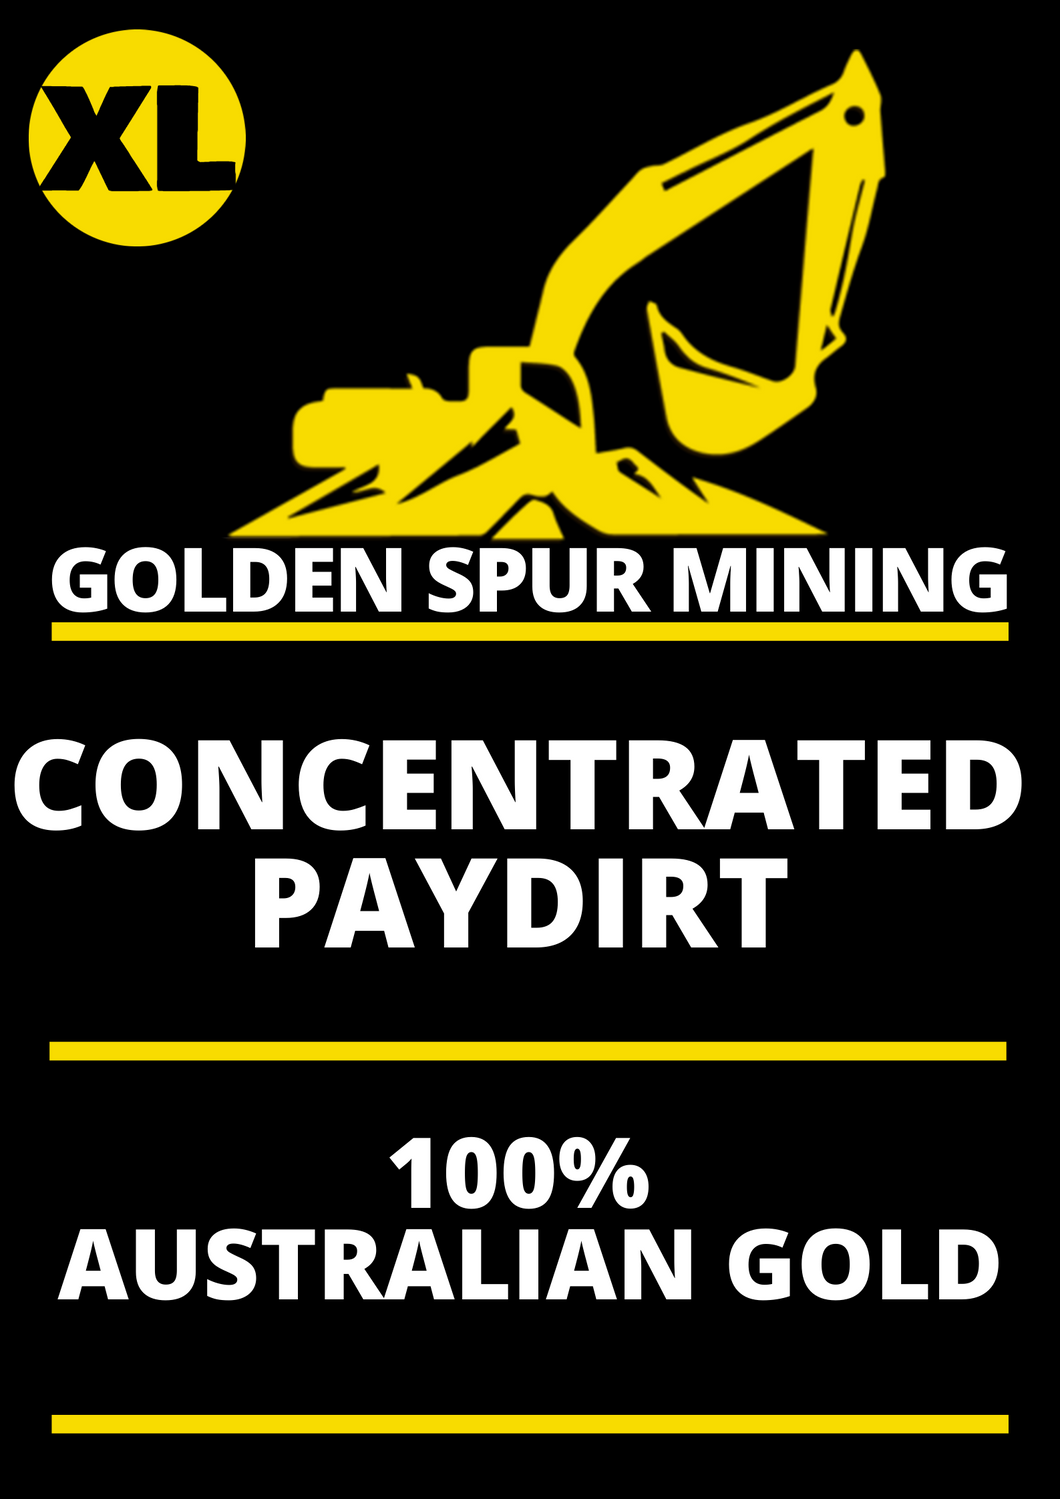 Golden Spur XL 1500g Gold Pay Dirt Best Return Paydirt in Oz Australian Licenced Family Business Quick Delivery Full Support